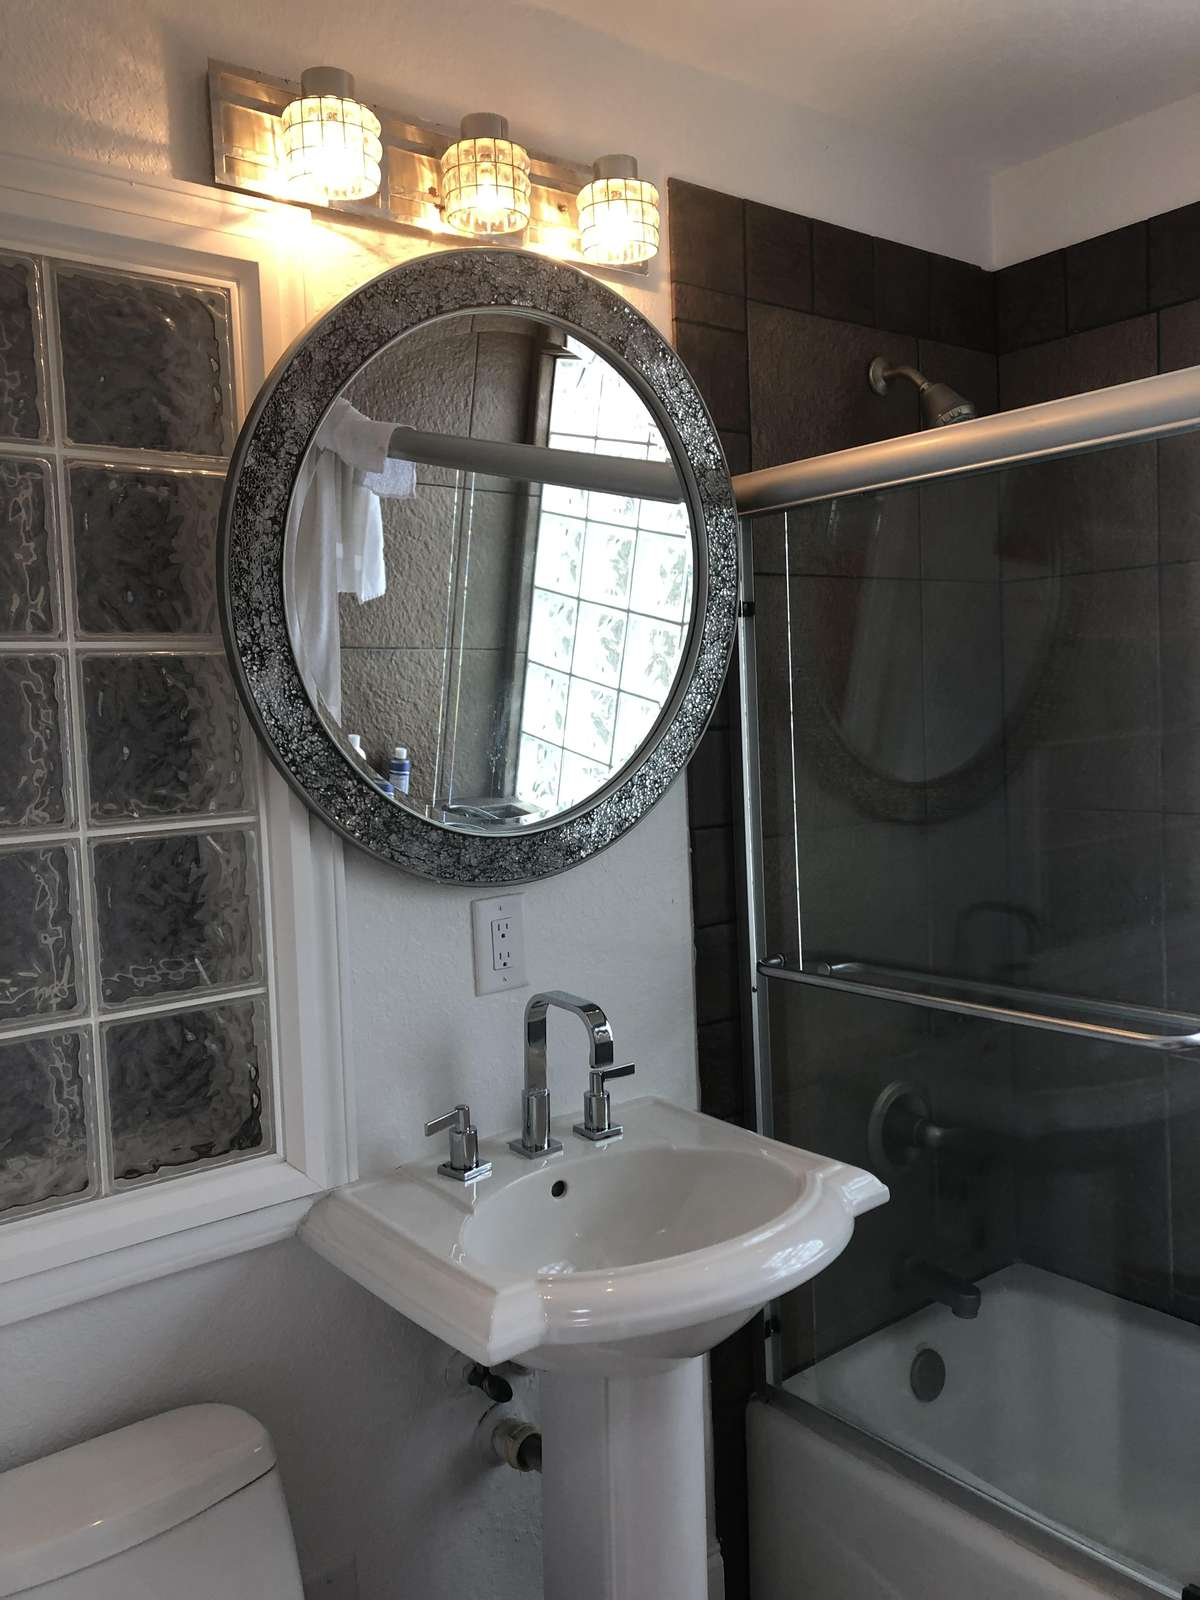 bathroom # 1 with tub and shower